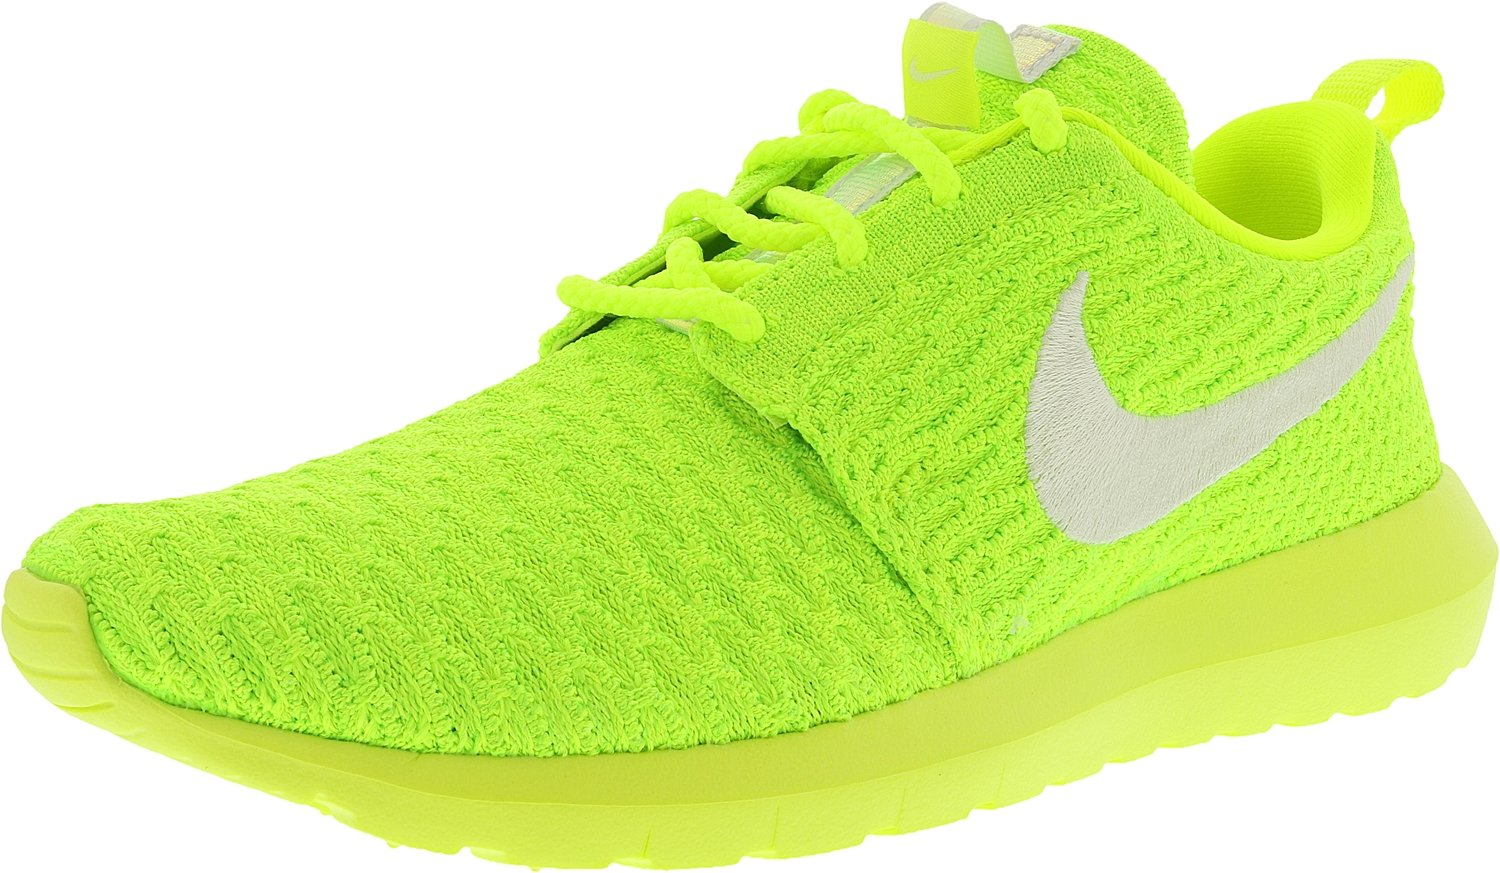 NIKE Womens Roshe One Flyknit Flyknit Colorblock Running Shoes B01LY2JKG5 7 M US|Volt/White-electric Green